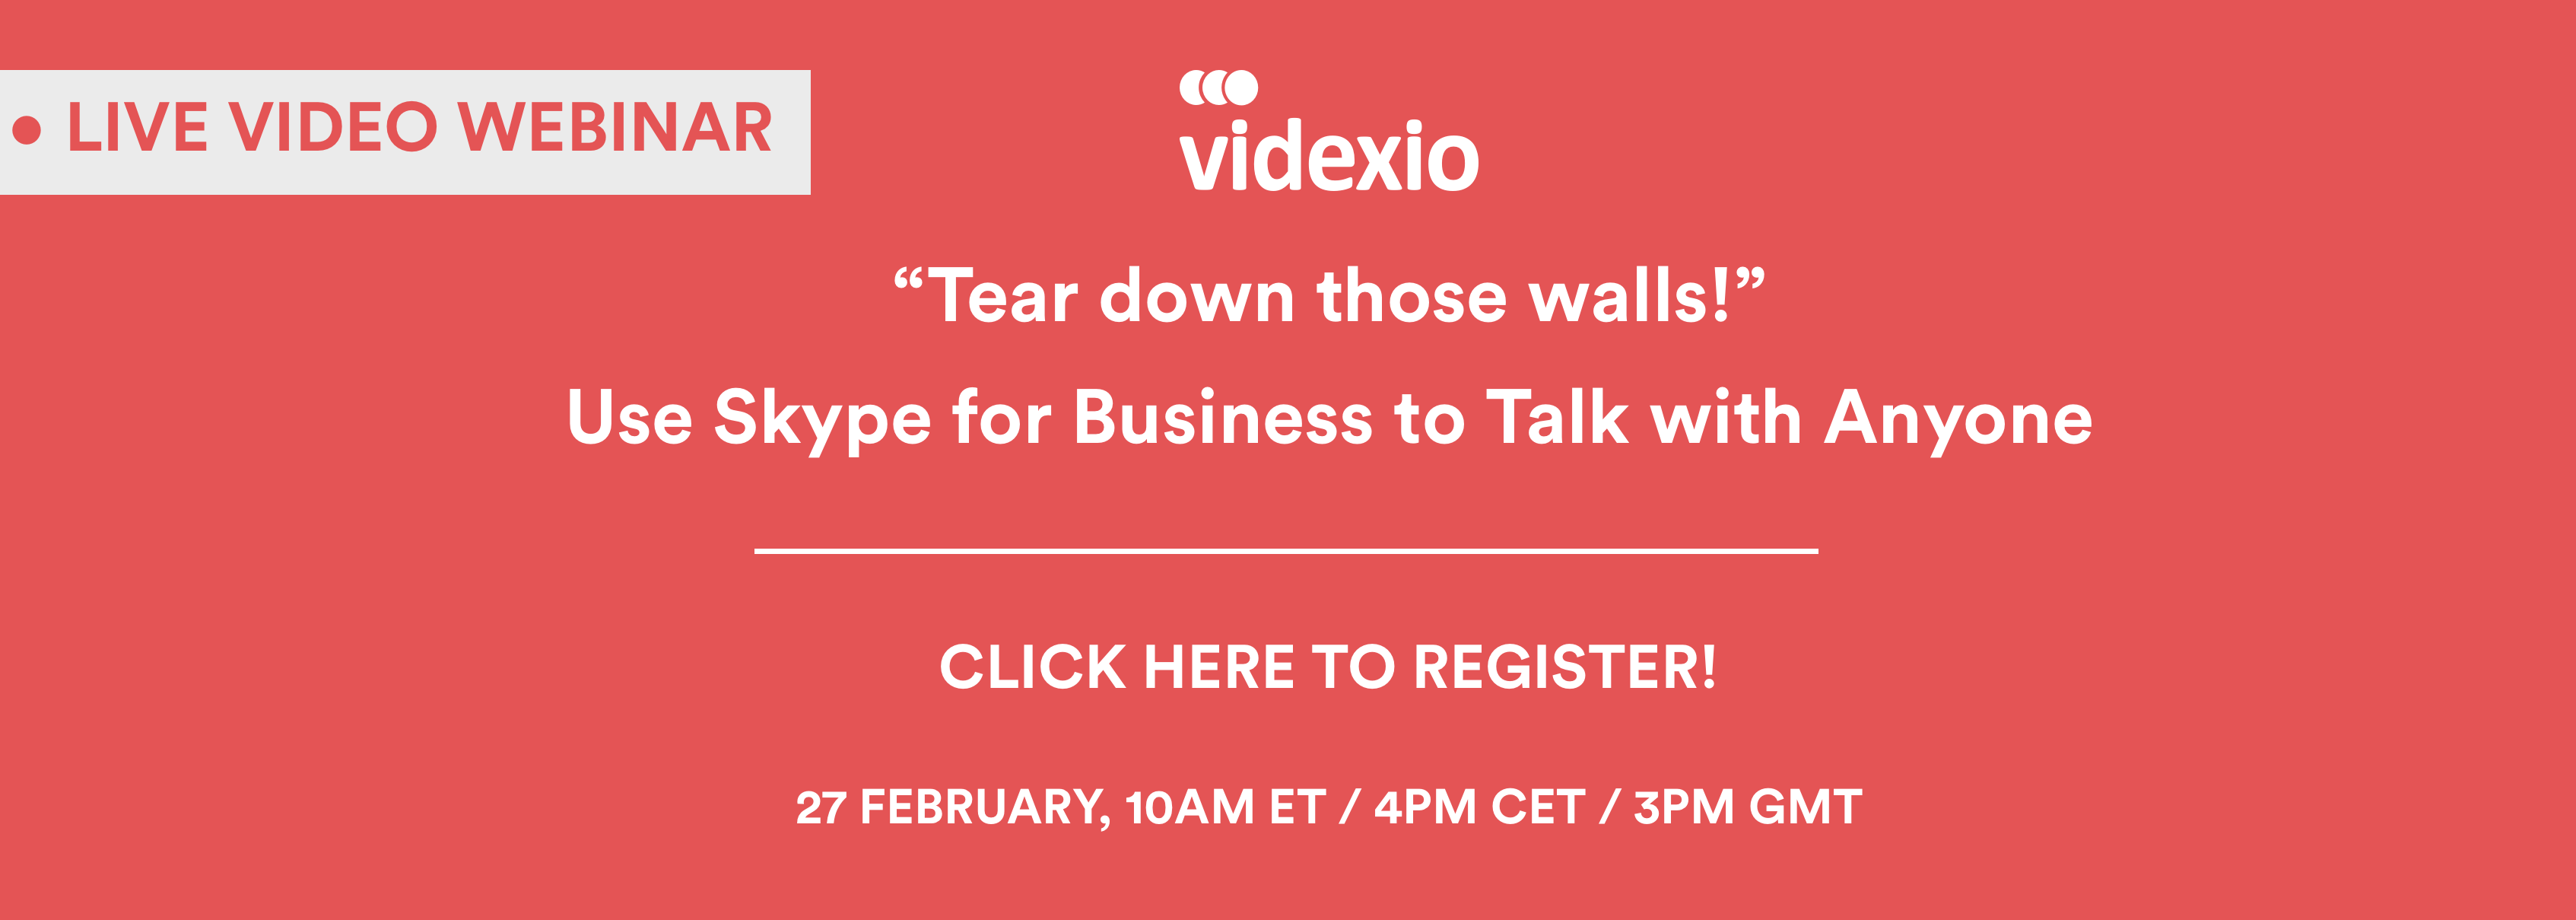 Videxio webinar signup Feb 2018.png